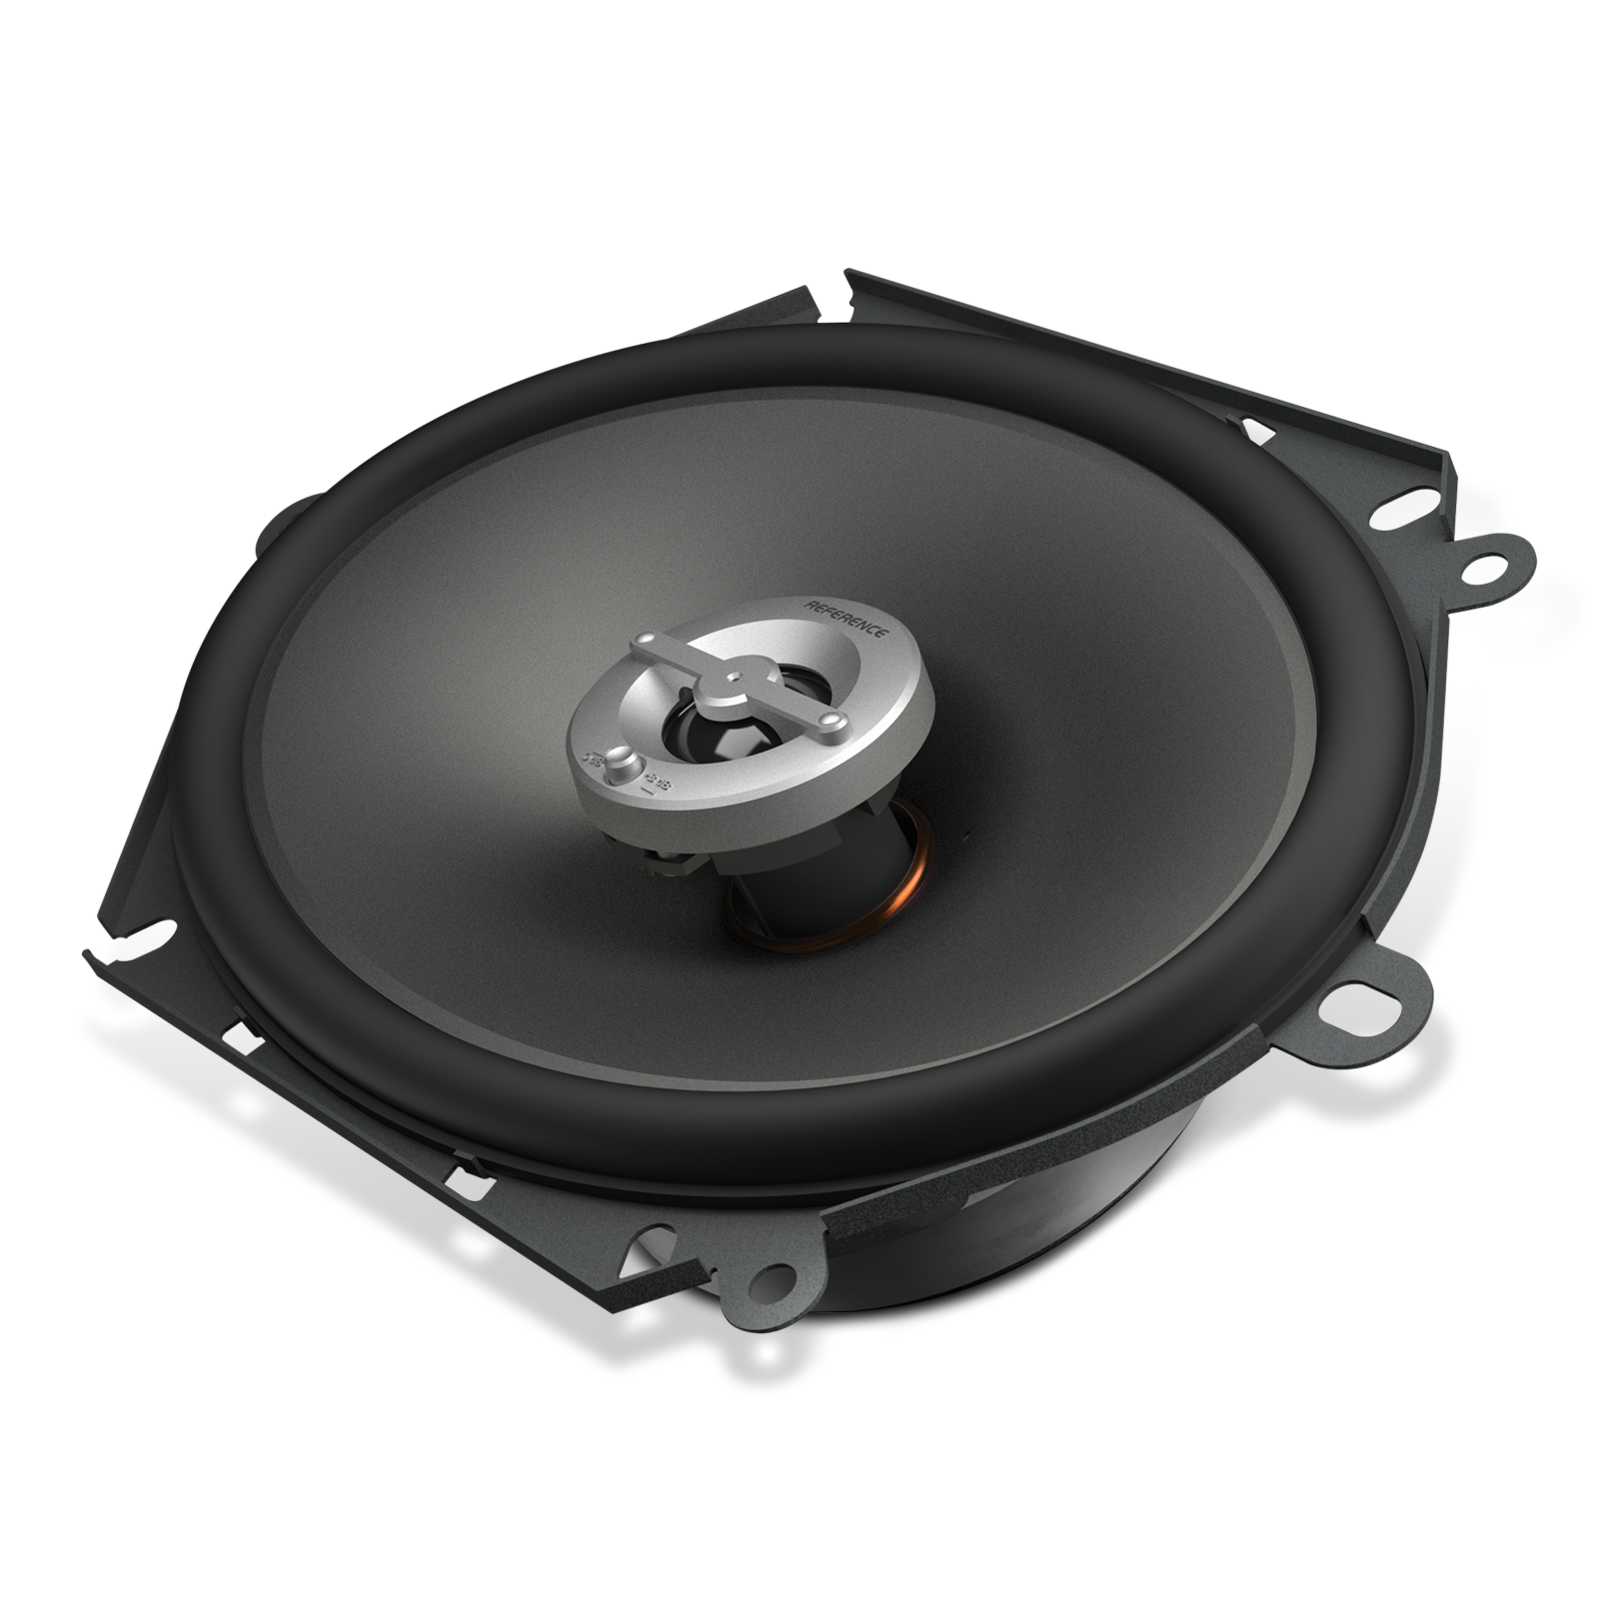 """Reference 8602cfx - Black - A 6"""" x 8"""" / 5"""" x 7"""" custom-fit, two-way, high-fidelity coaxial speaker with true 4-ohm technology - Hero"""